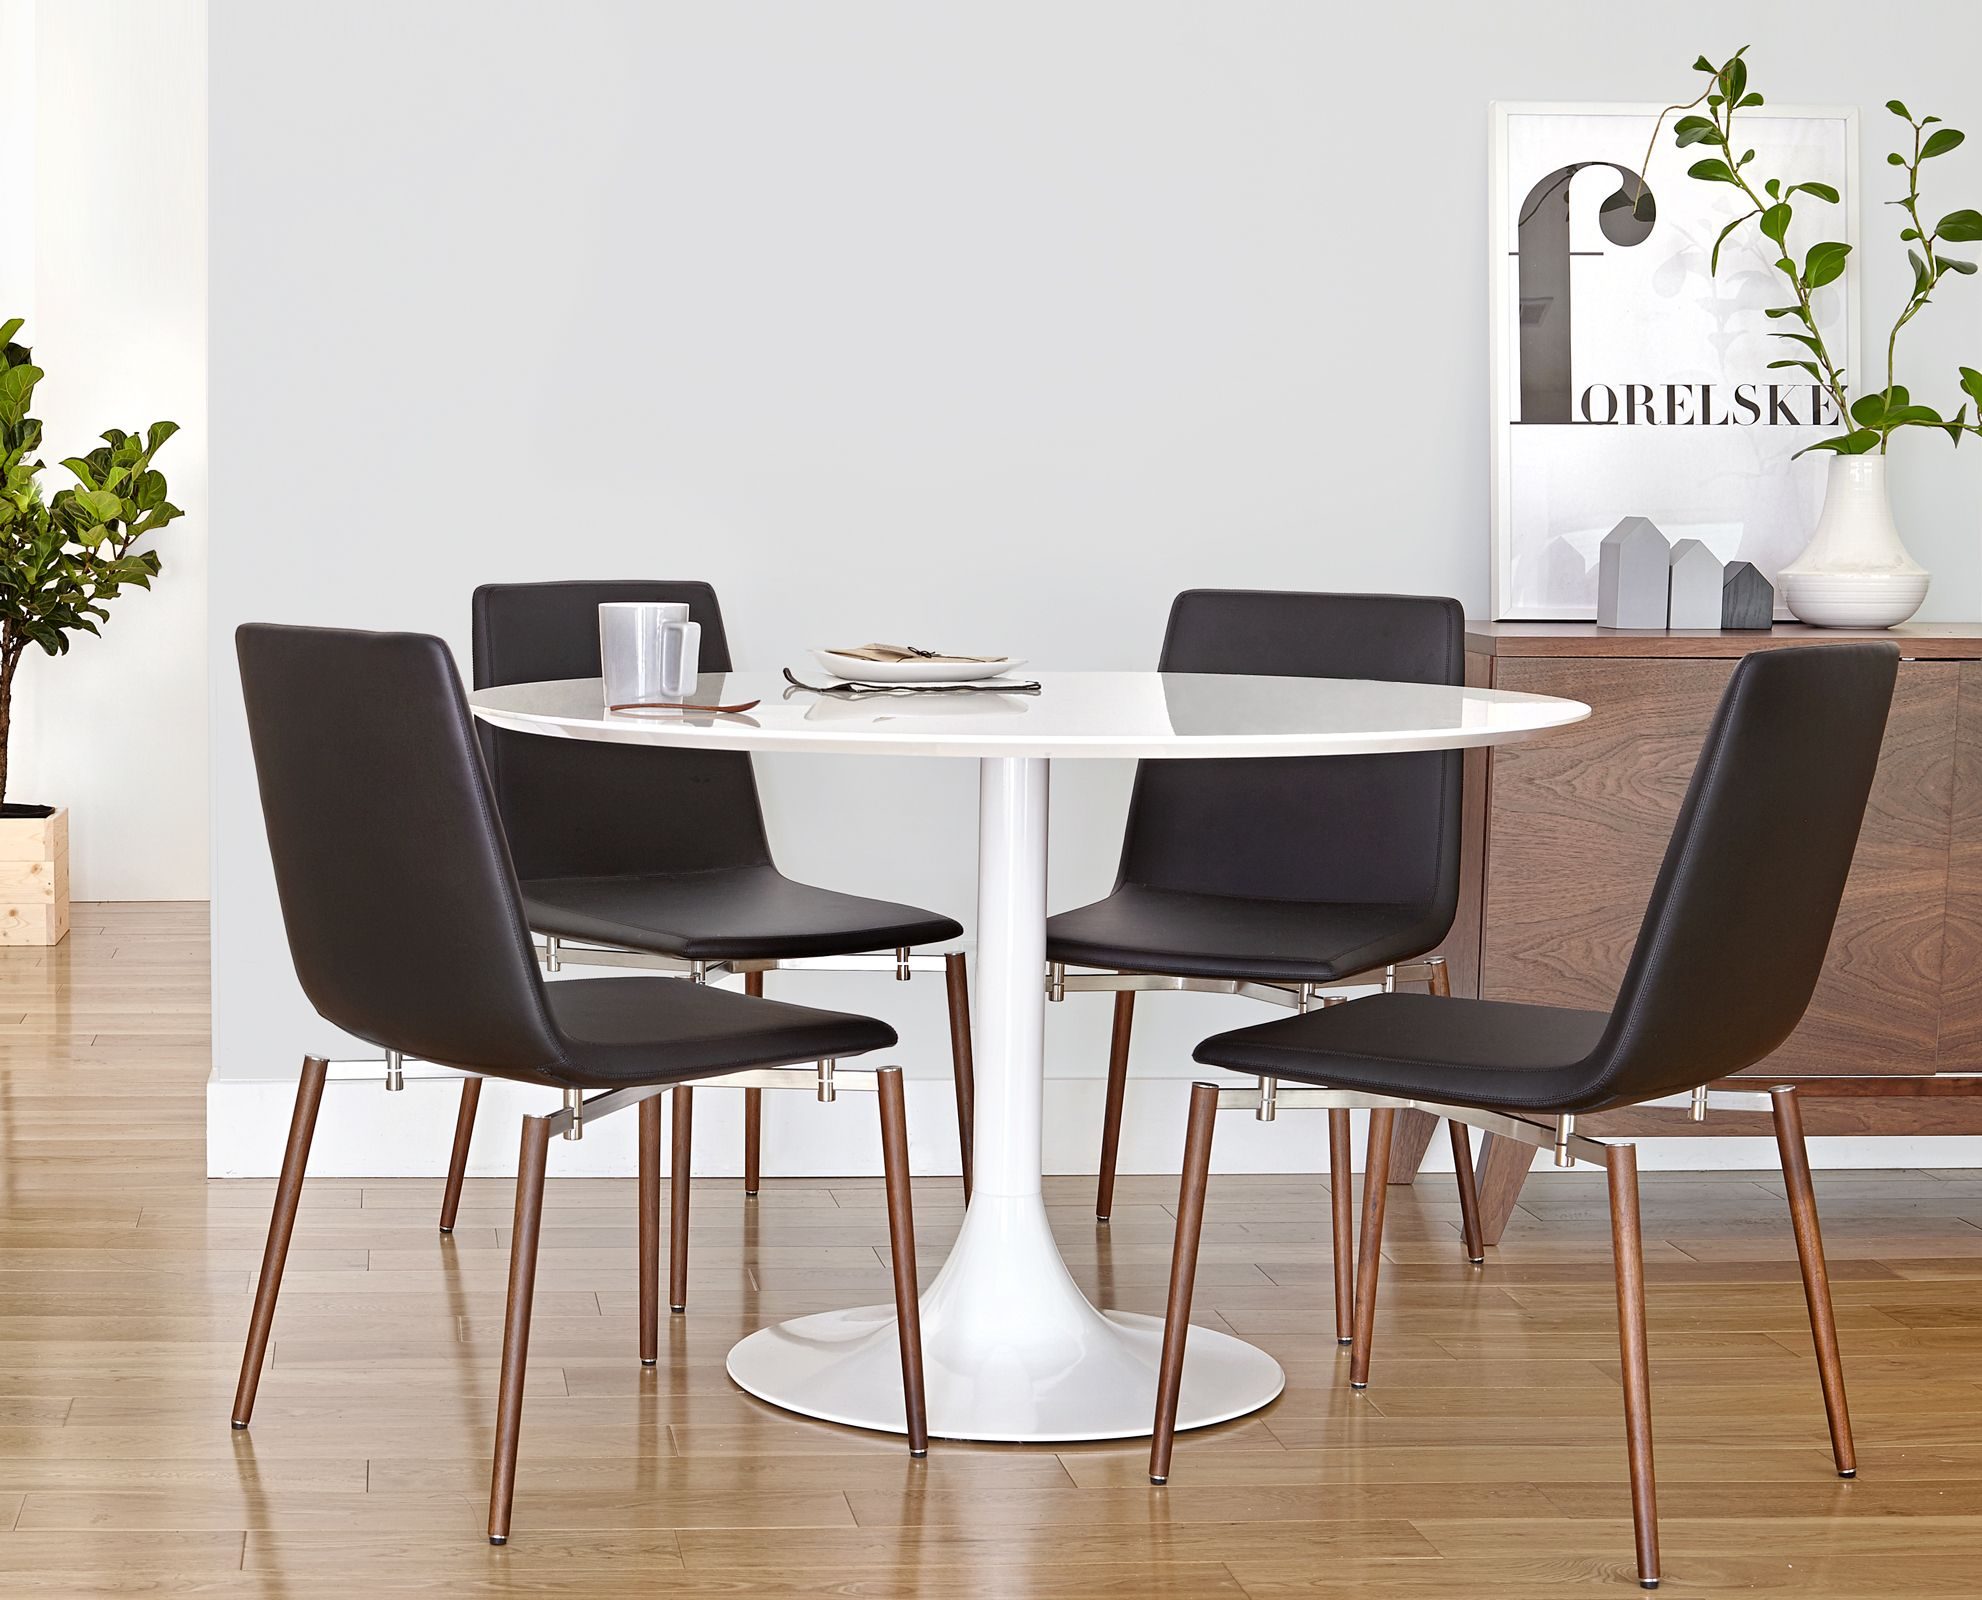 Dania Chairs Corona Dining Table And Neura Dining Chair From Dania